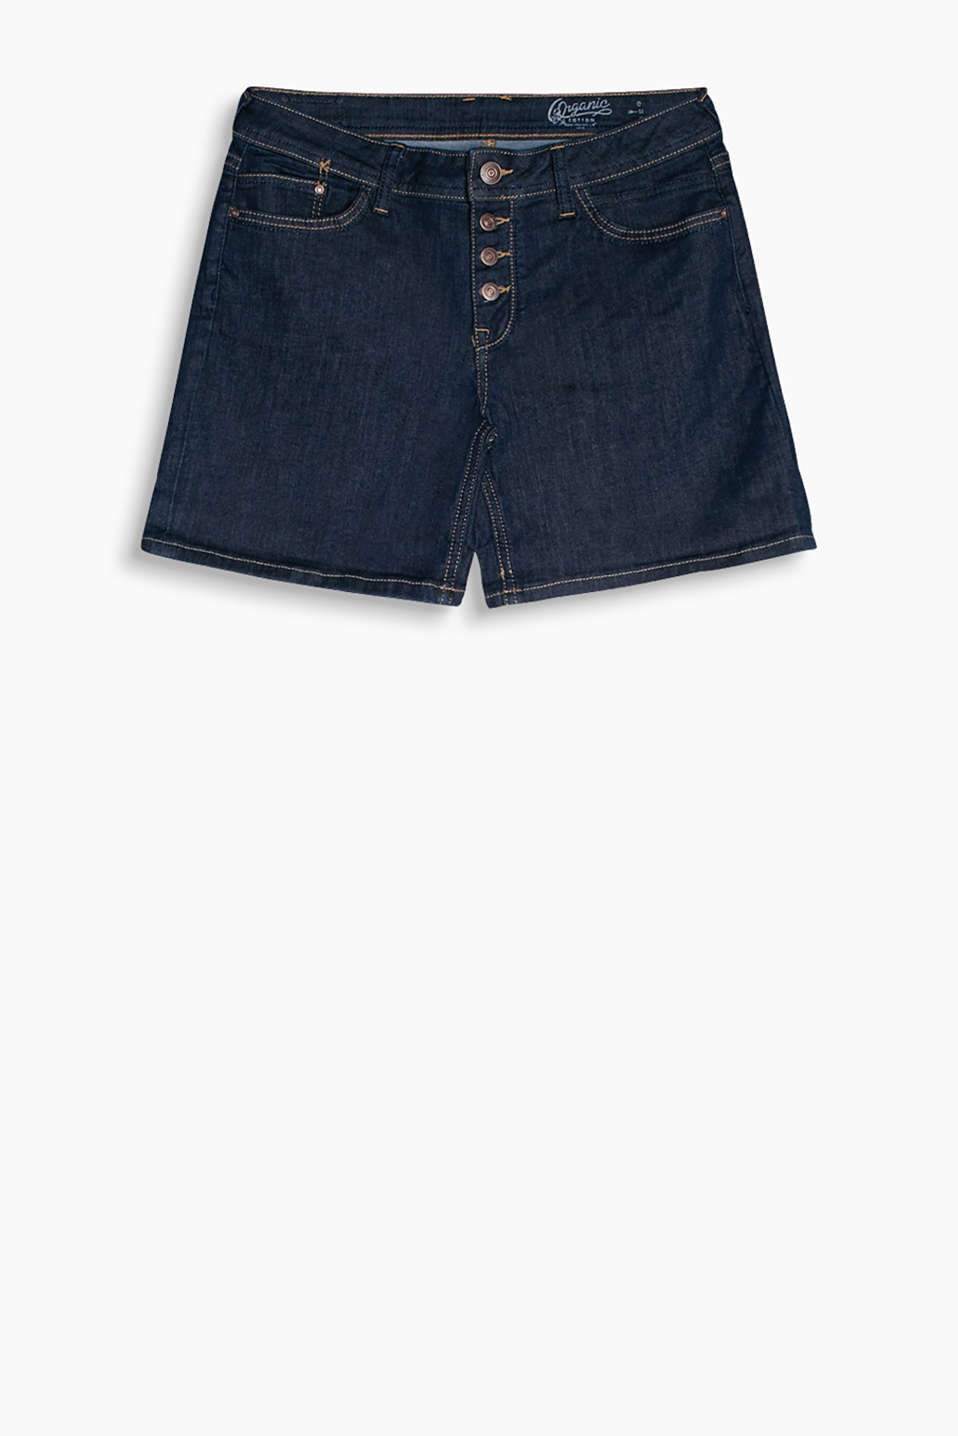 Dark-Denim-Shorts mit Knopfleiste und Stretchkomfort, Organic Cotton